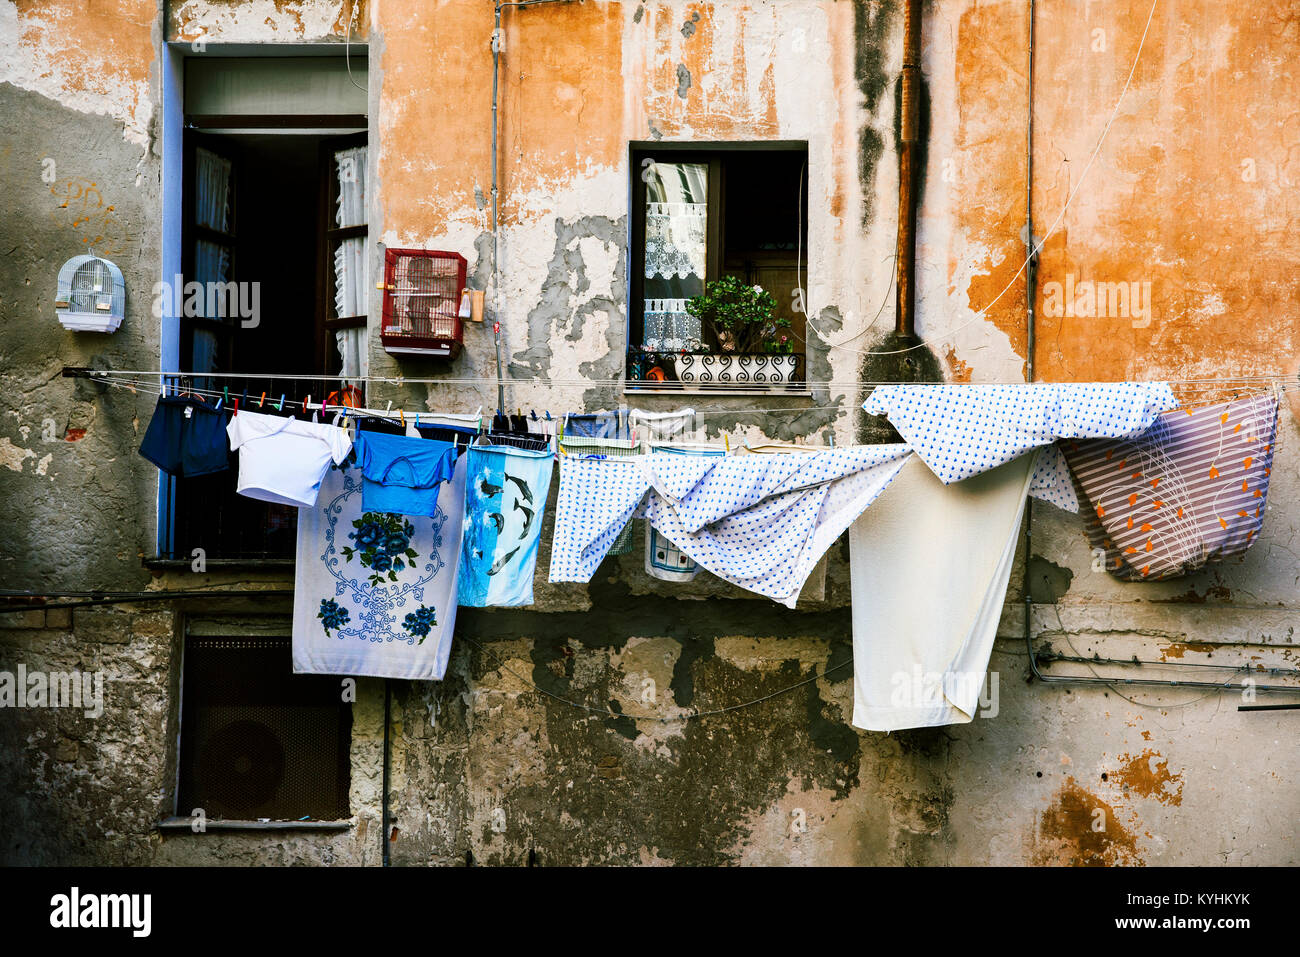 clothes hanging in some clothes lines outdoors in an old building, in the old town of Cagliari, in Sardinia, Italy - Stock Image